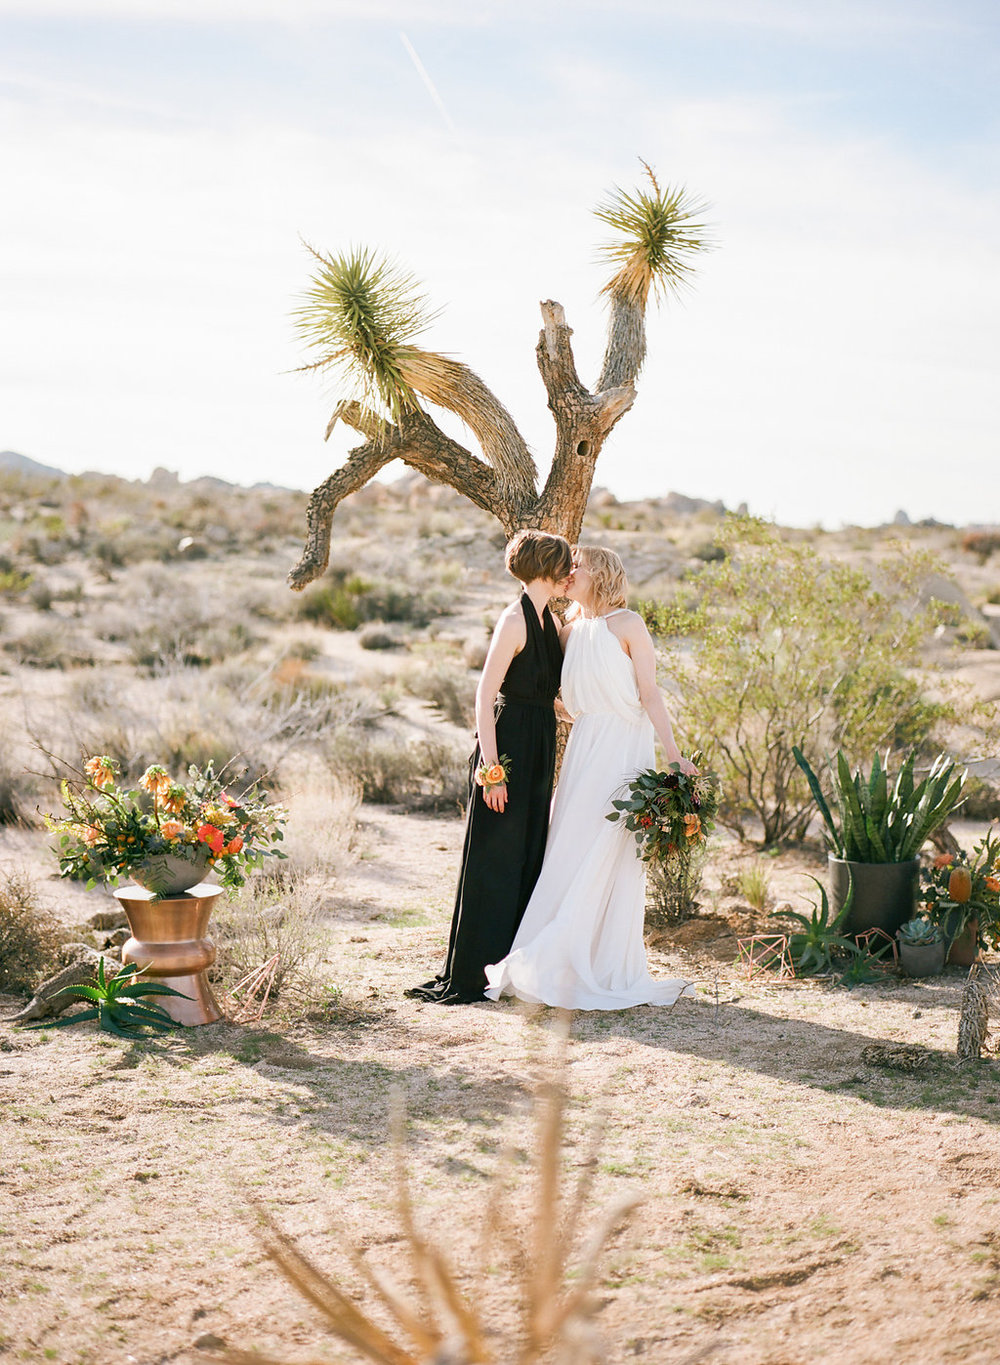 Jessica Schilling Wedding Photography kiss in front of joshua tree